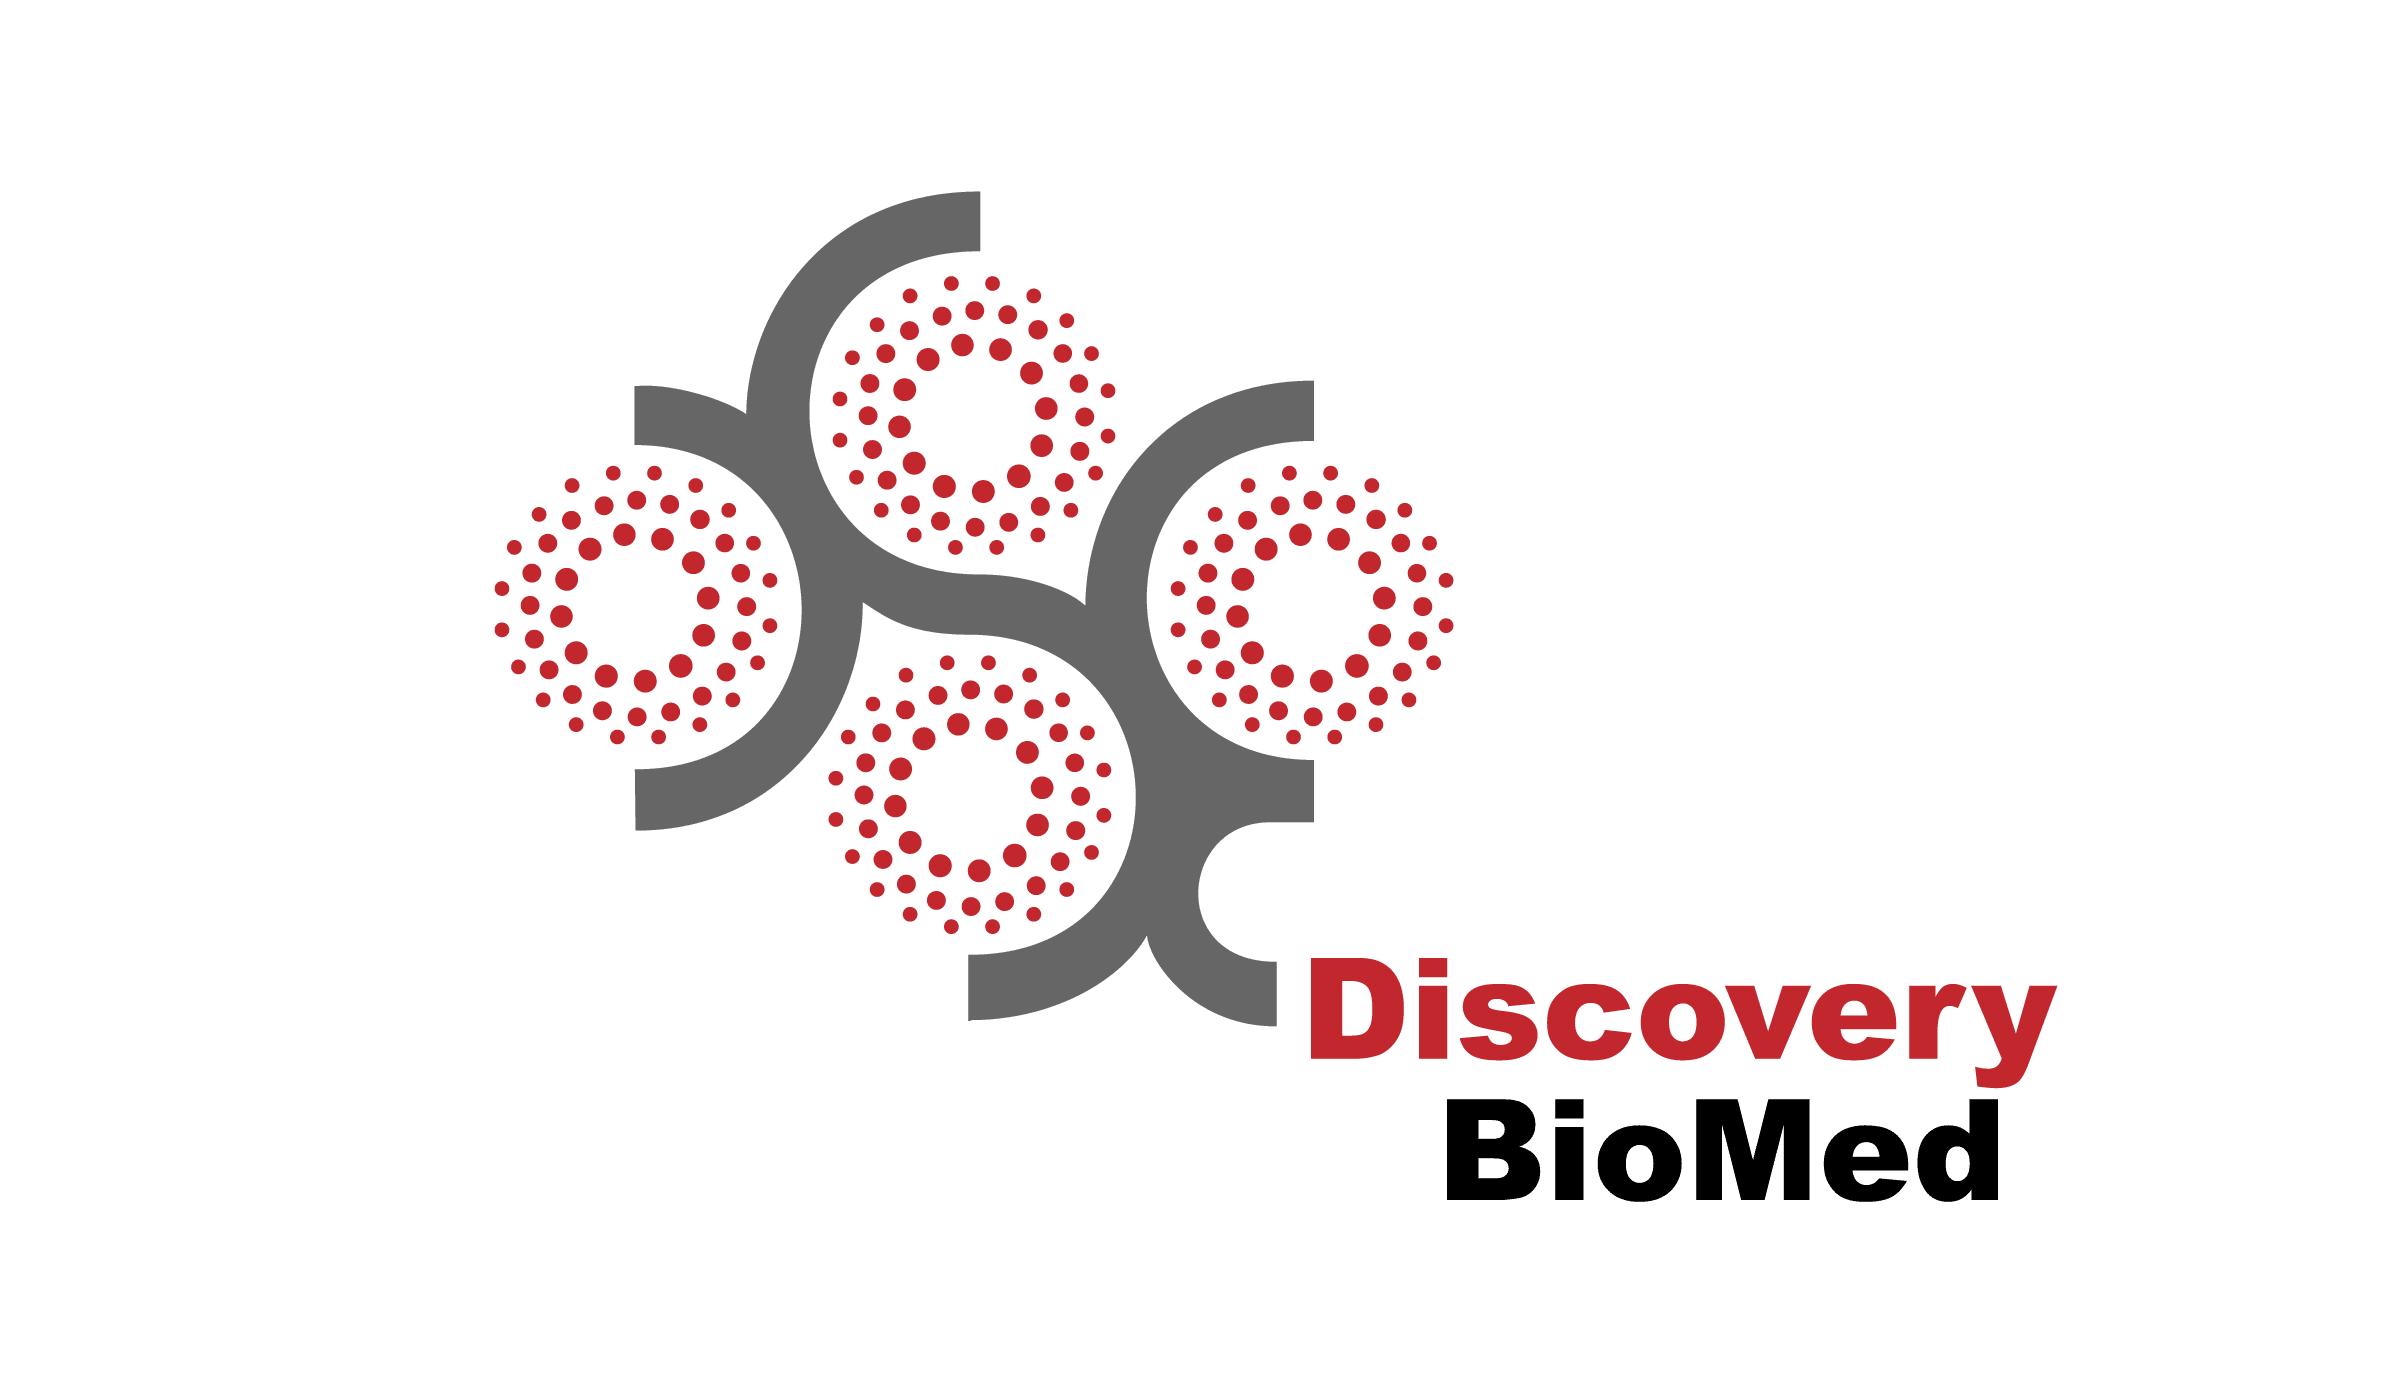 DiscoveryBioMed-Logo (high-res)